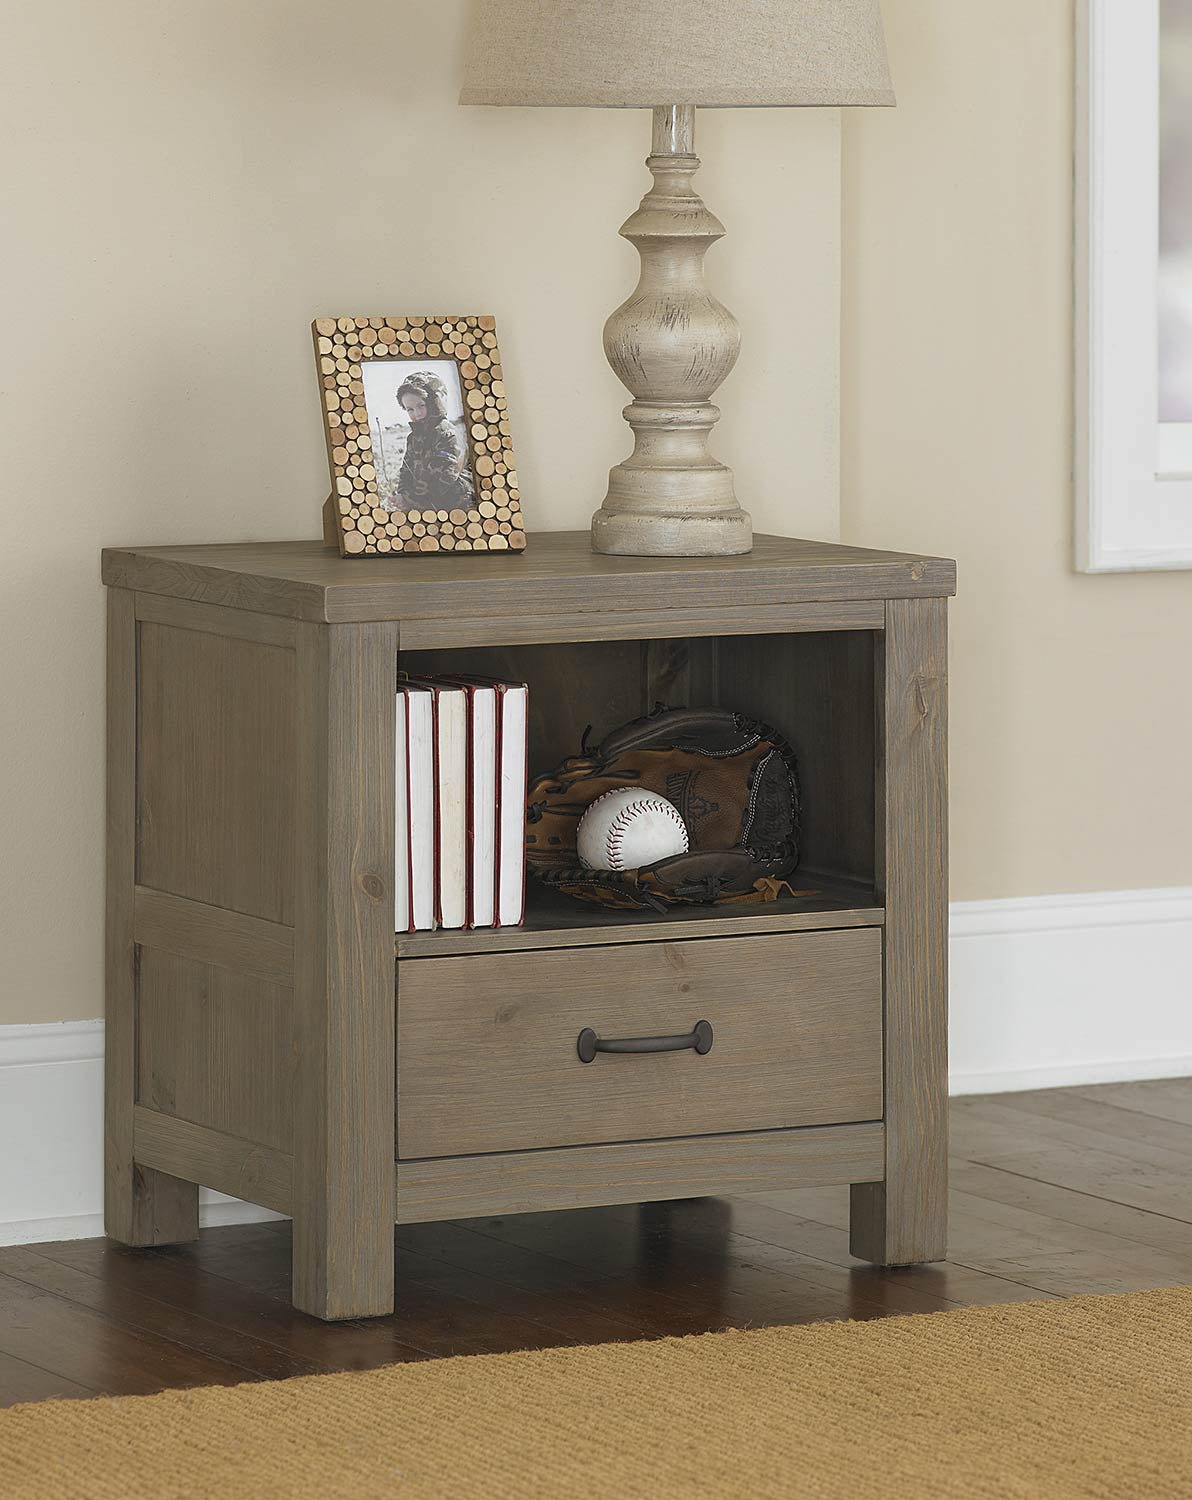 NE Kids Highlands Nightstand - Driftwood